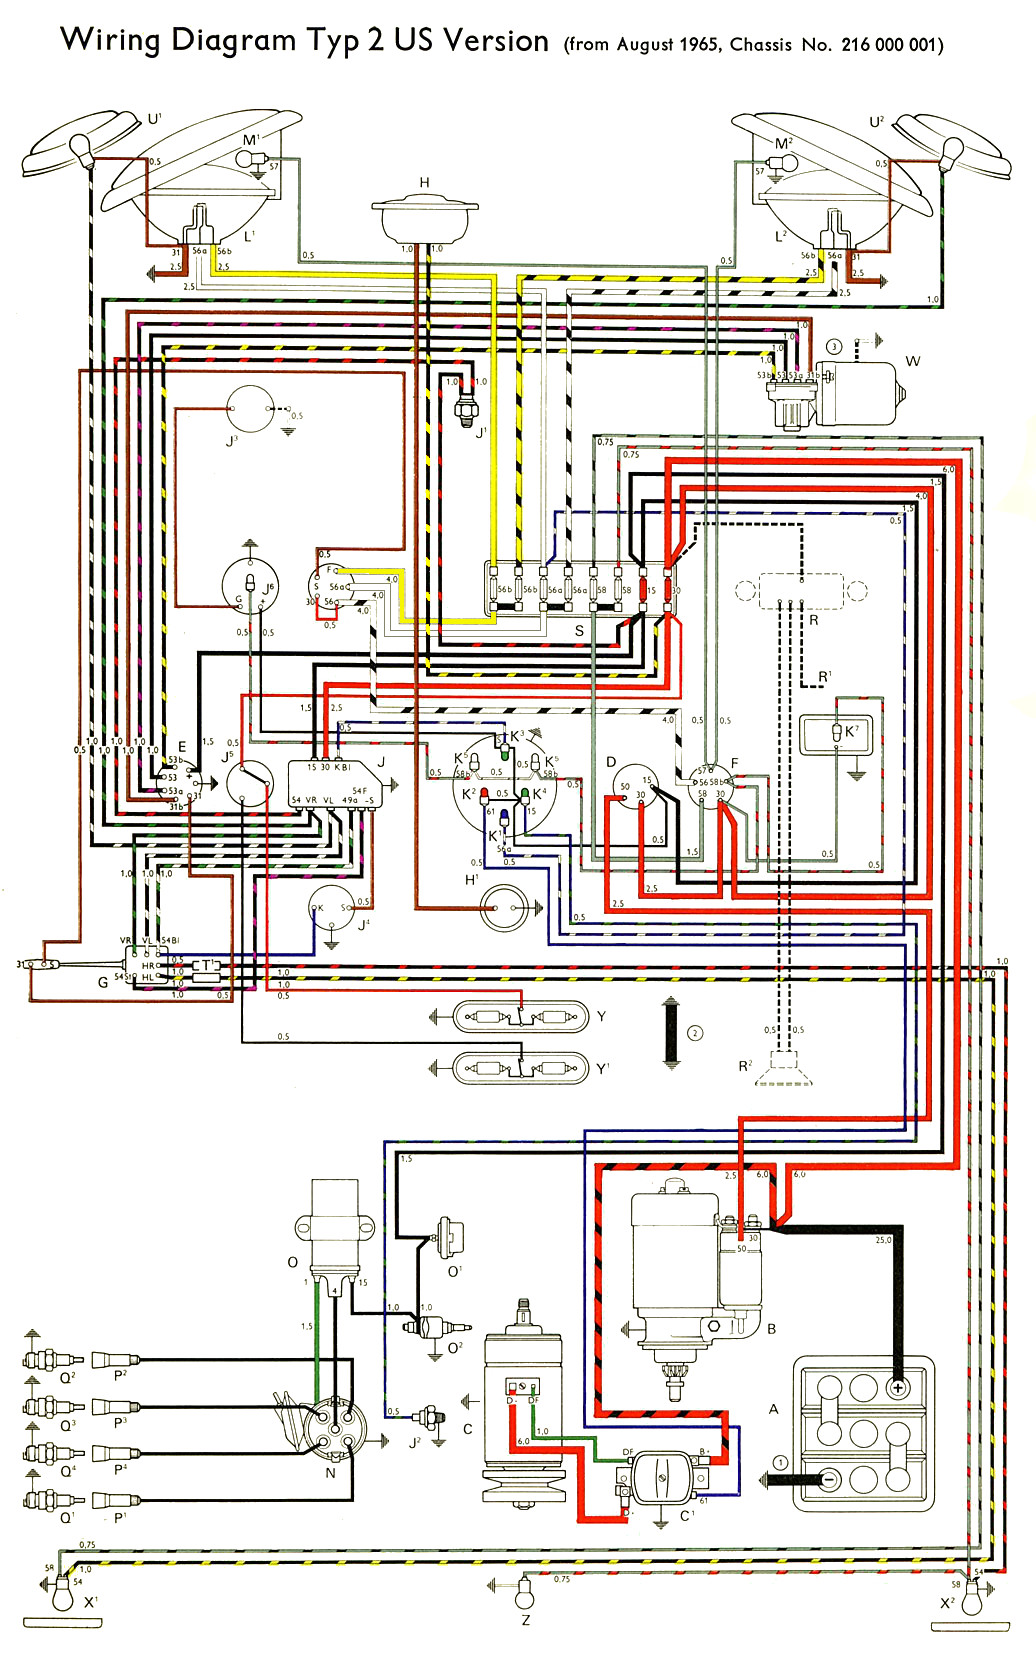 wiring diagram for hampton bay air conditioner hblg 1200r